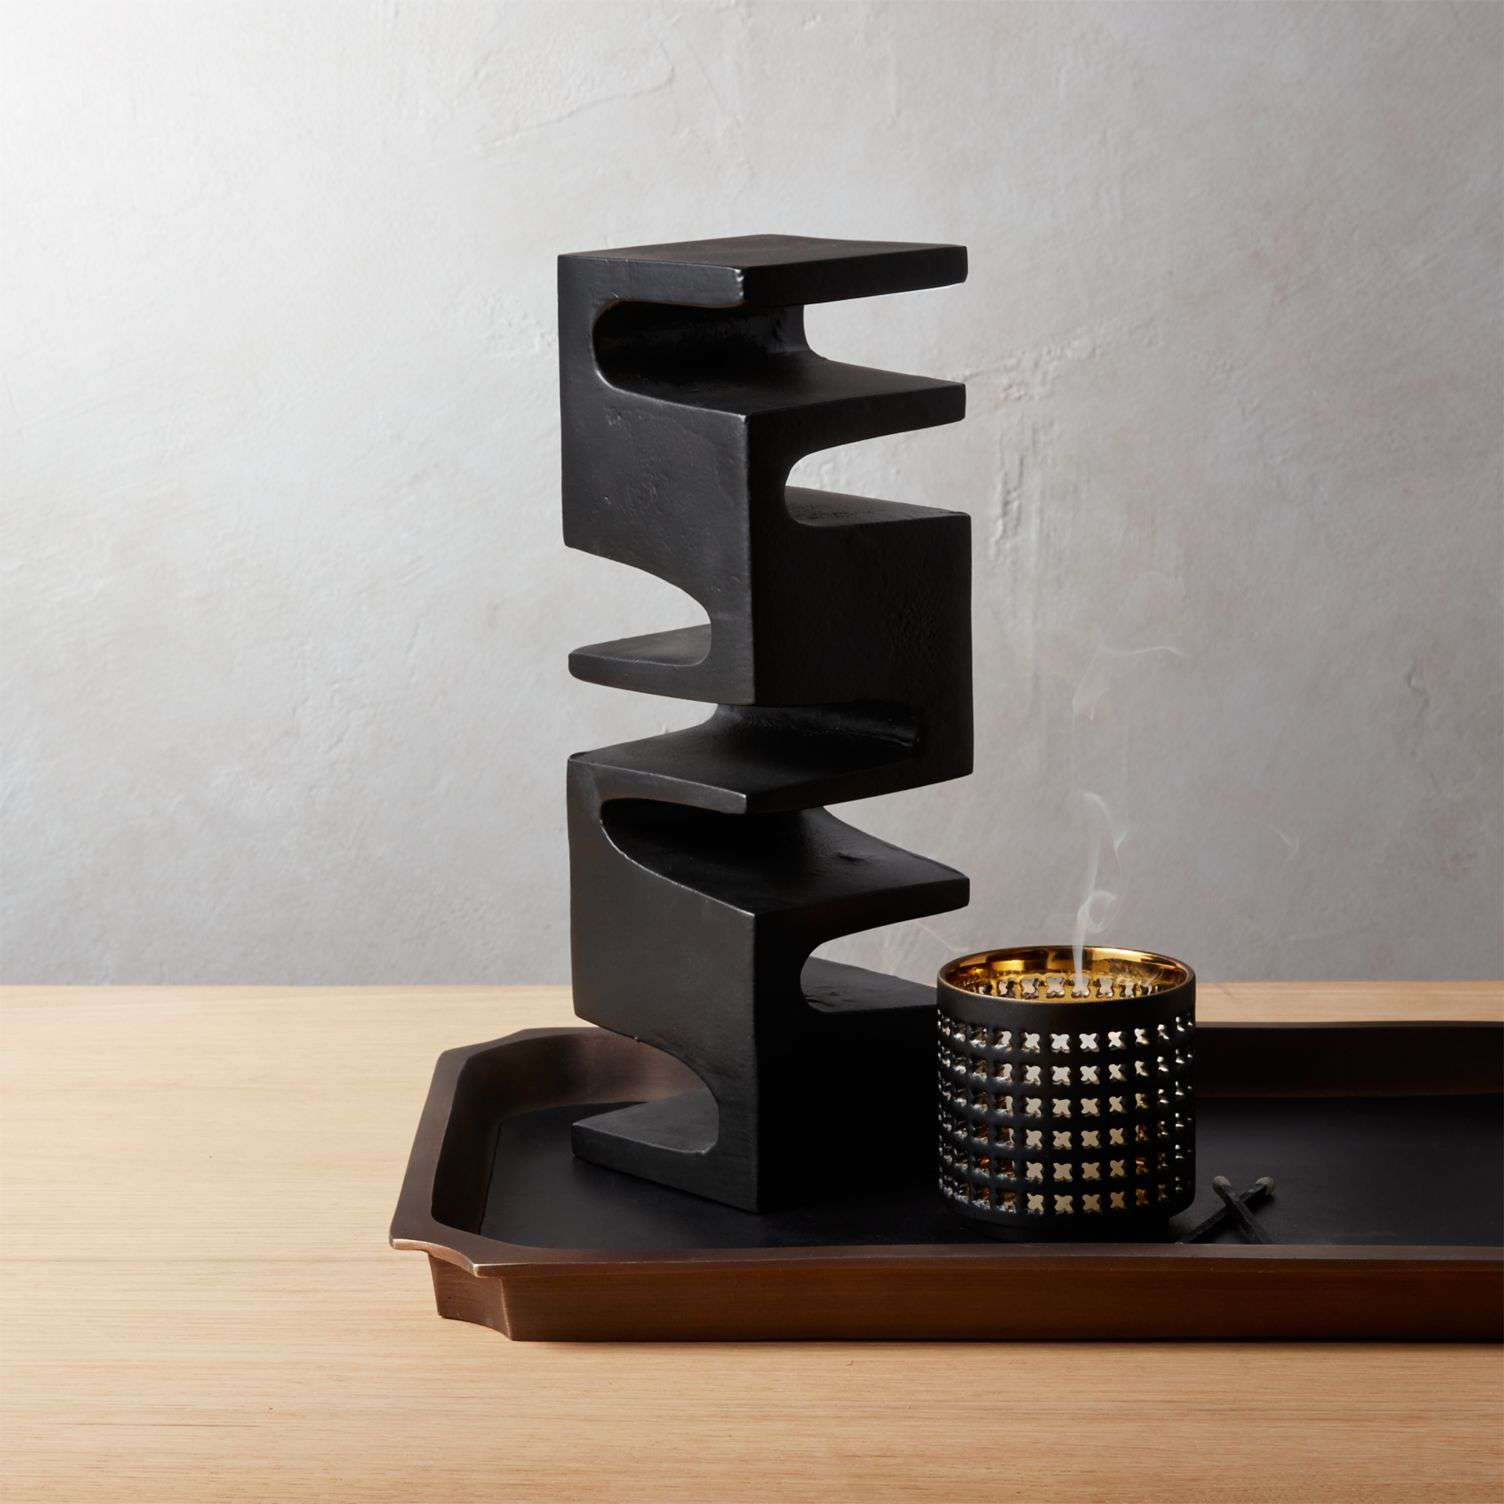 A tall black abstract sculpture by CB2.